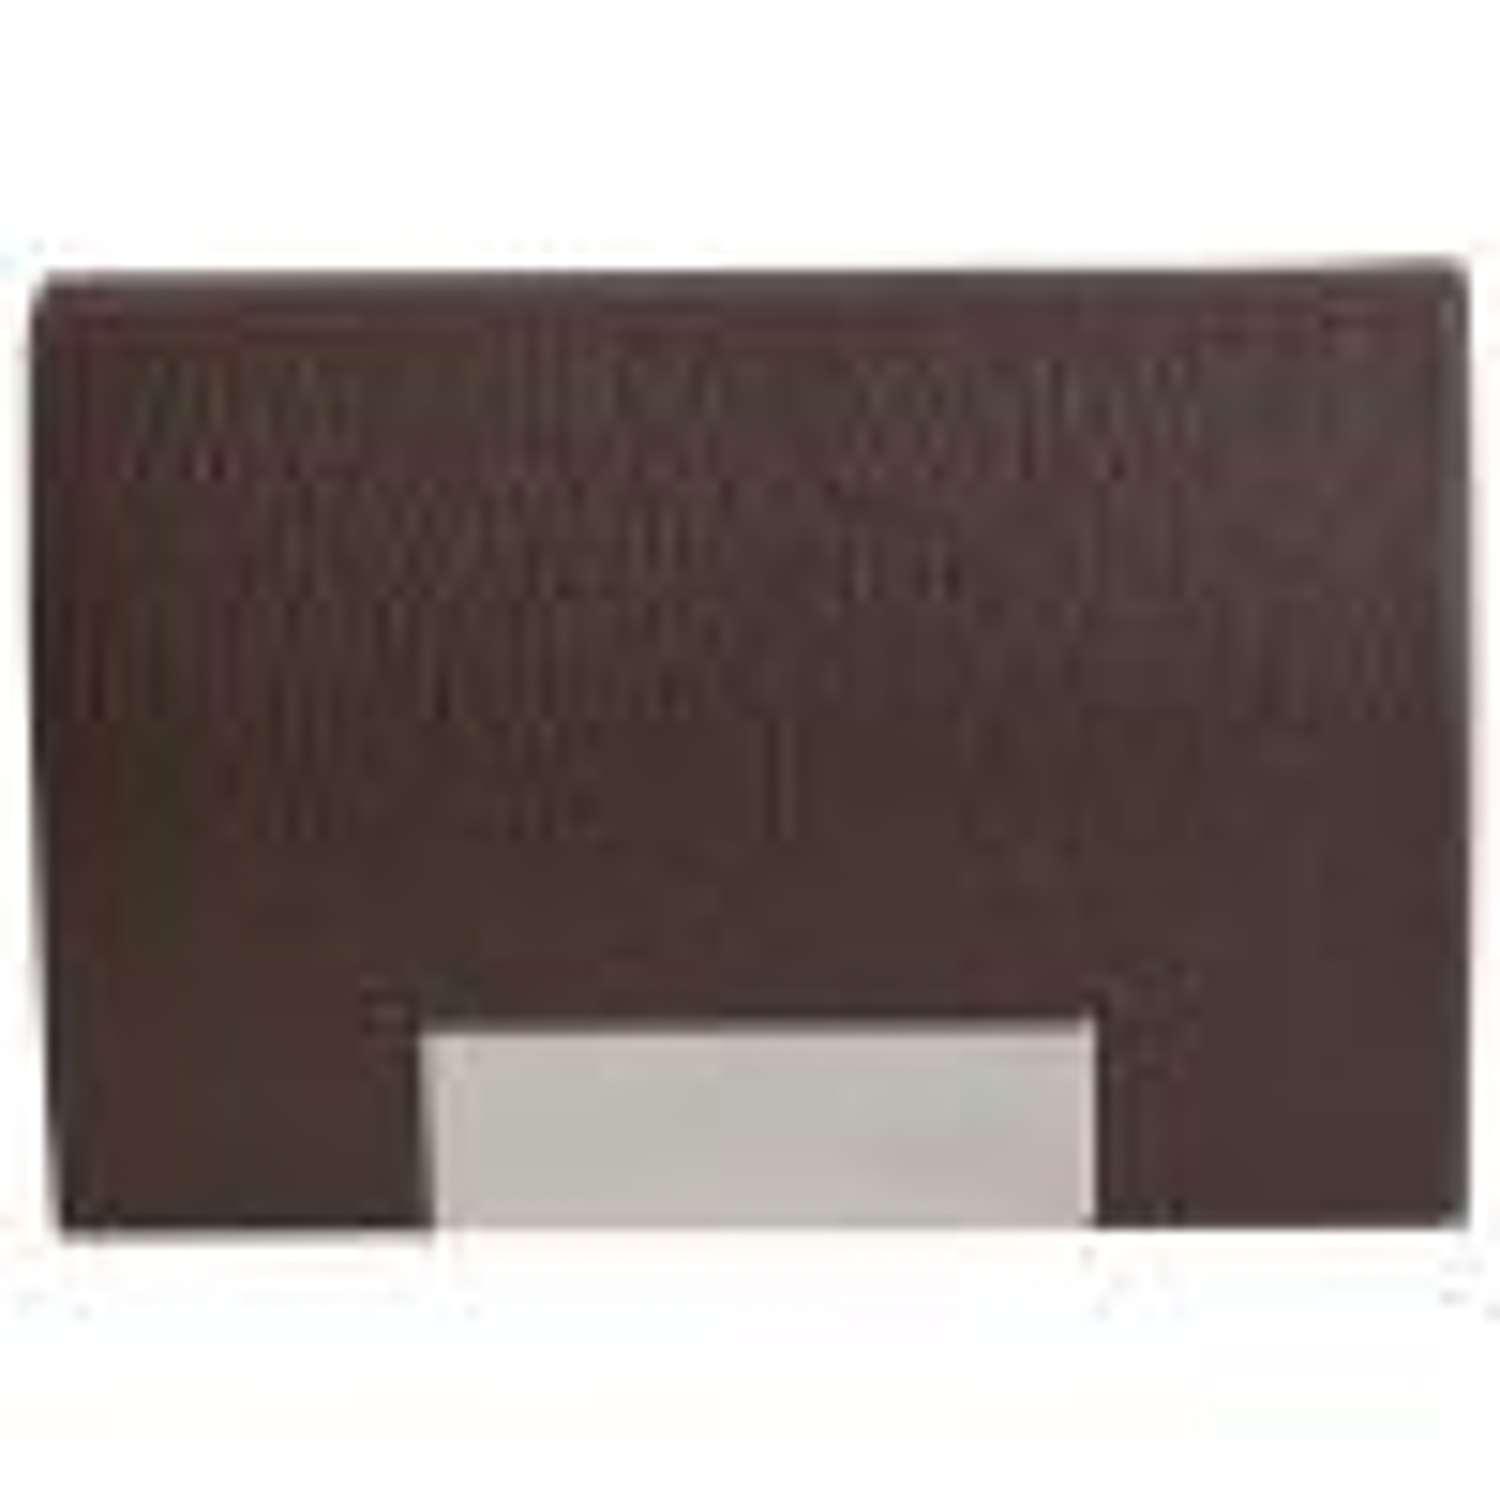 Card Case - Leatherette - available in Brown & Black